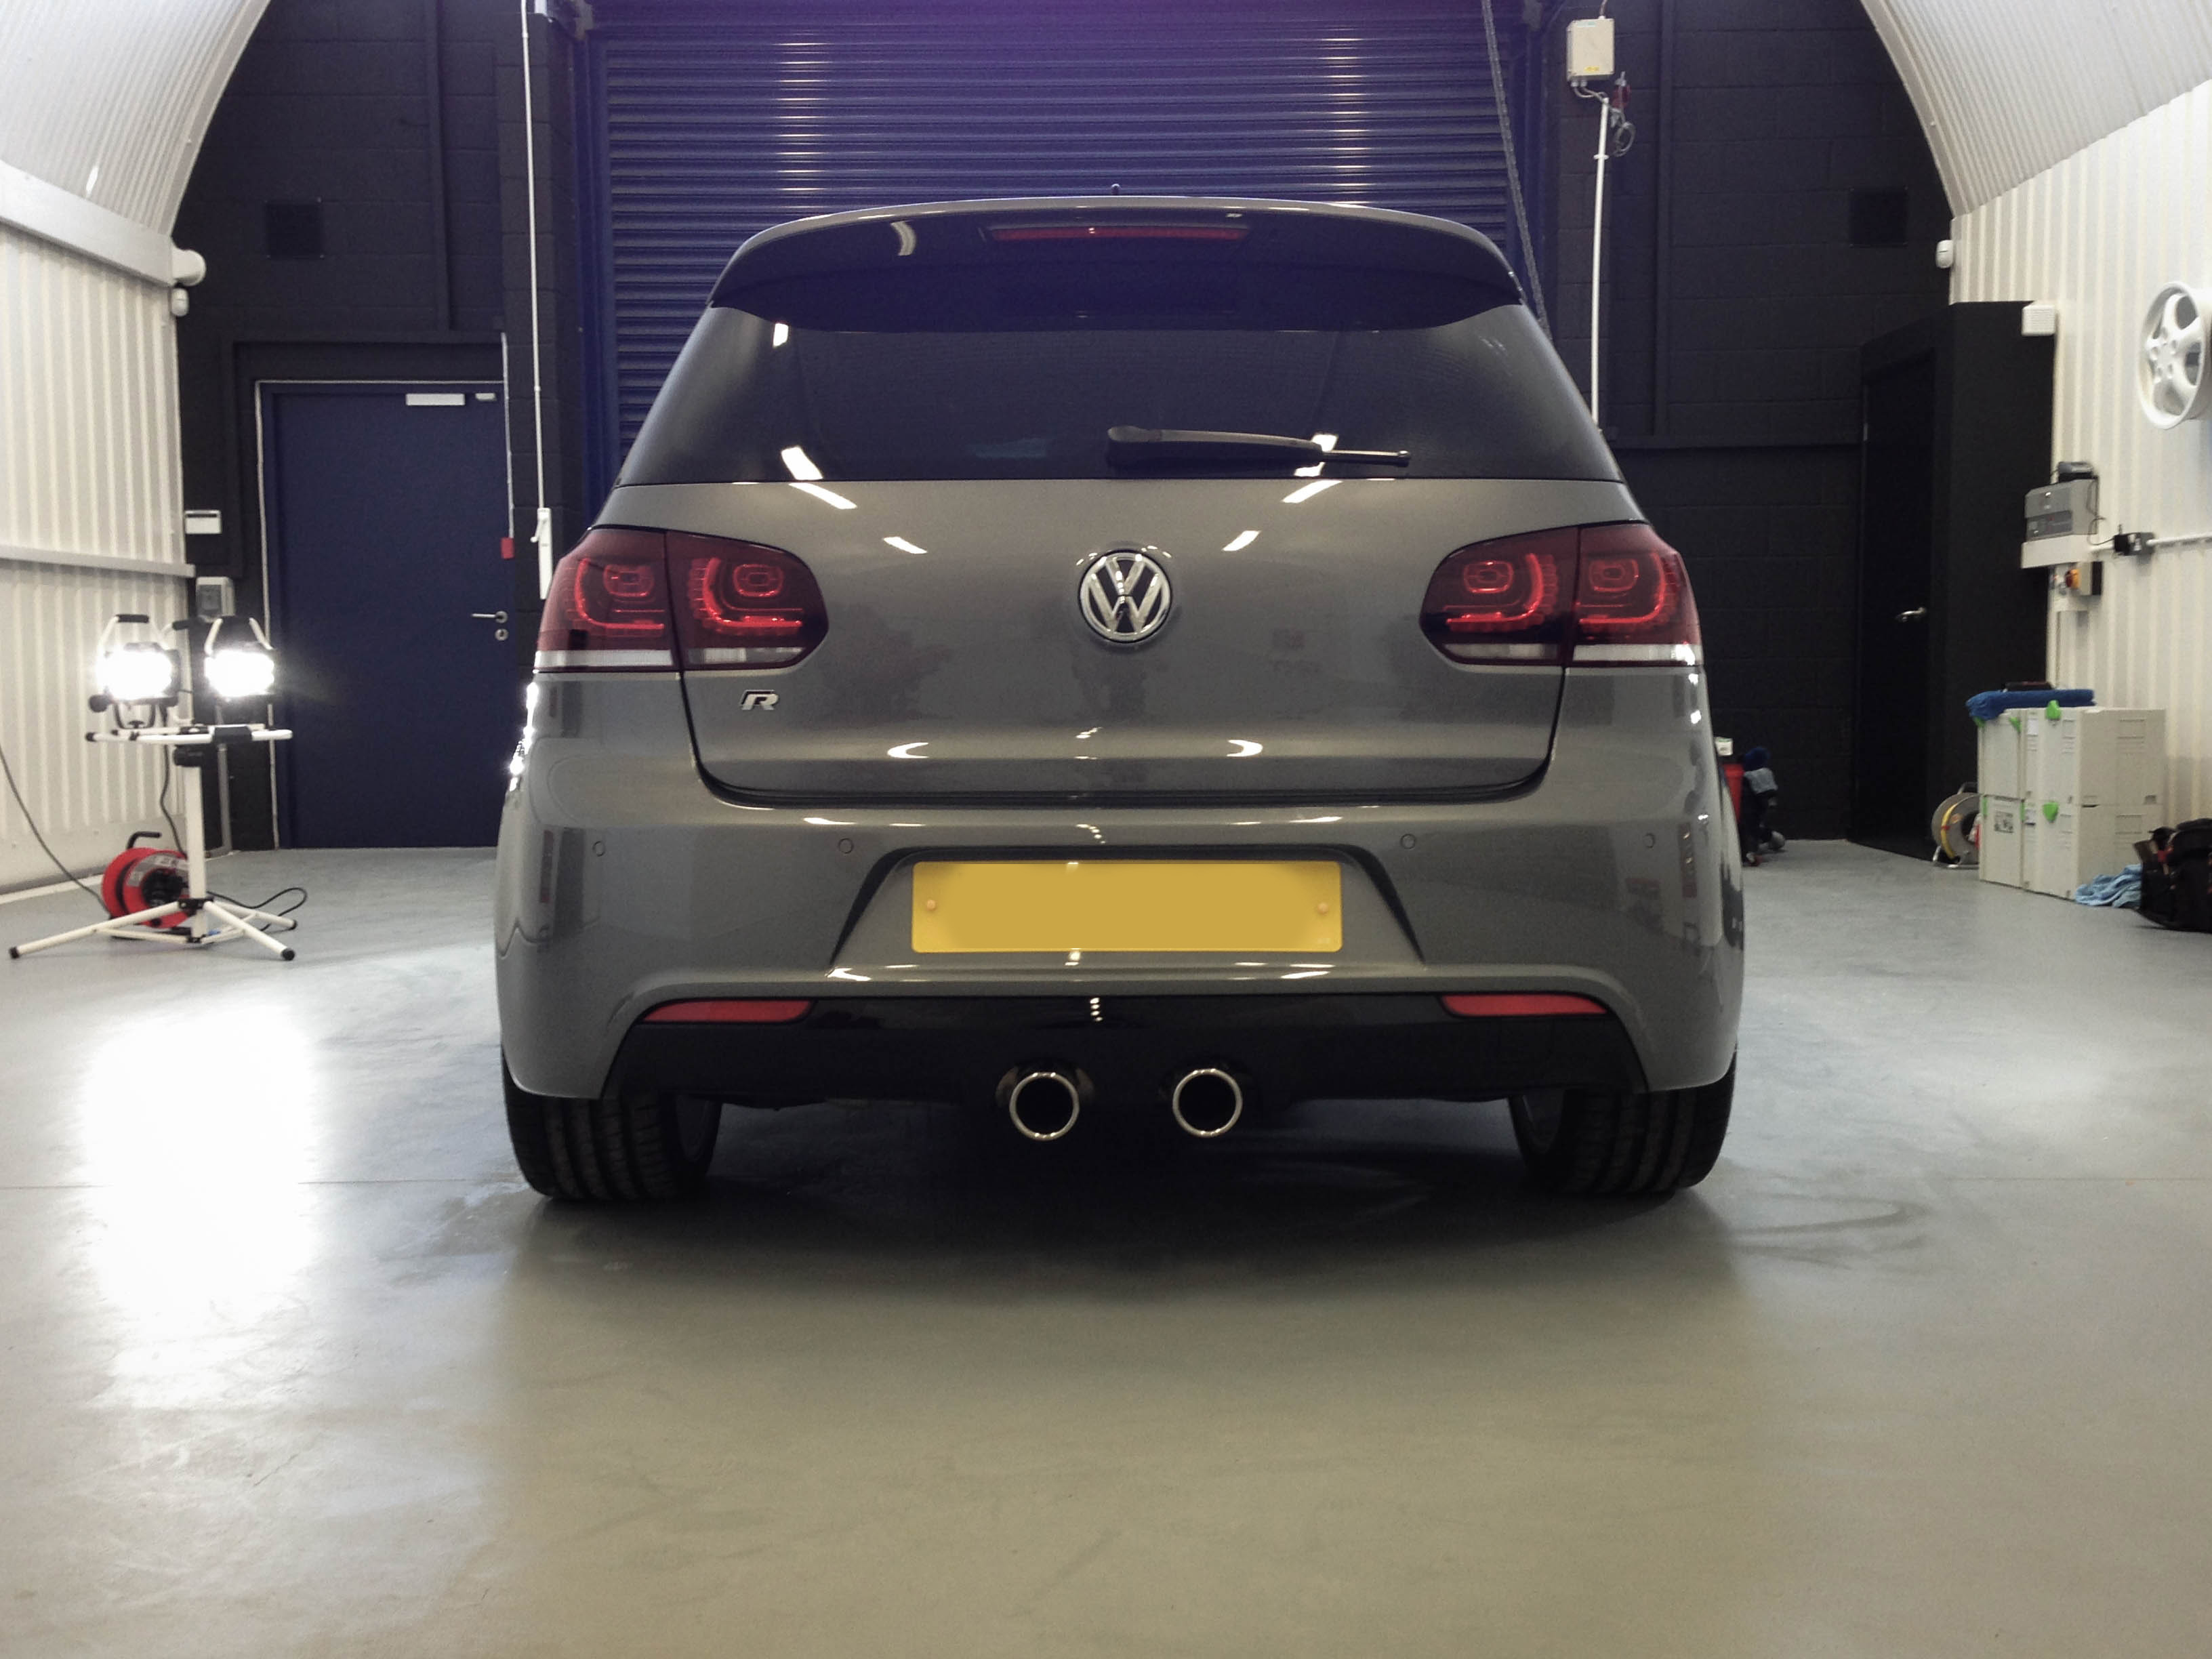 VW-Golf-R-rear